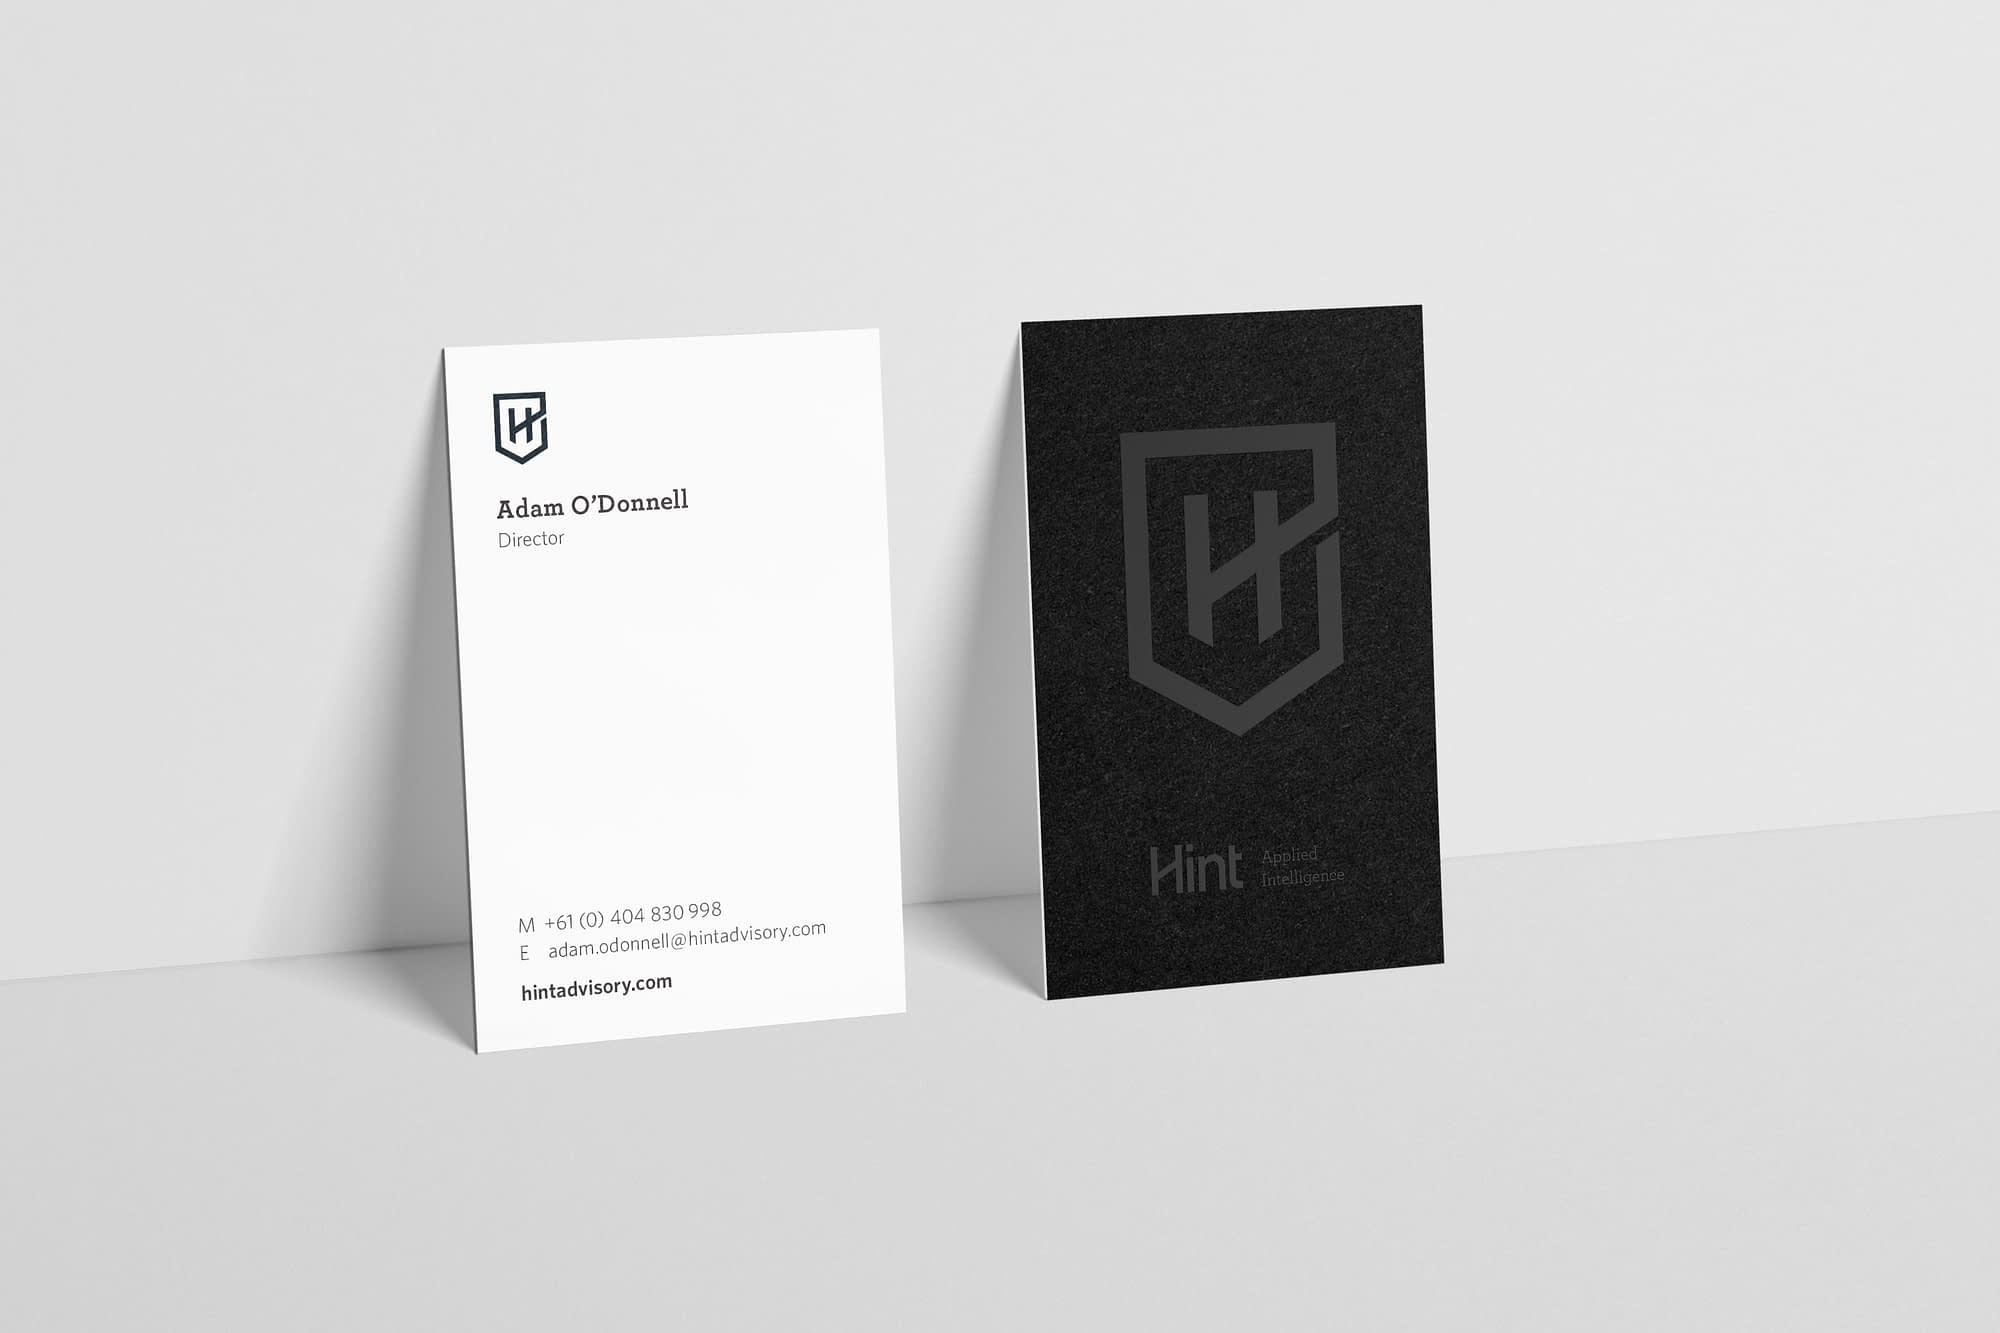 Hint business cards